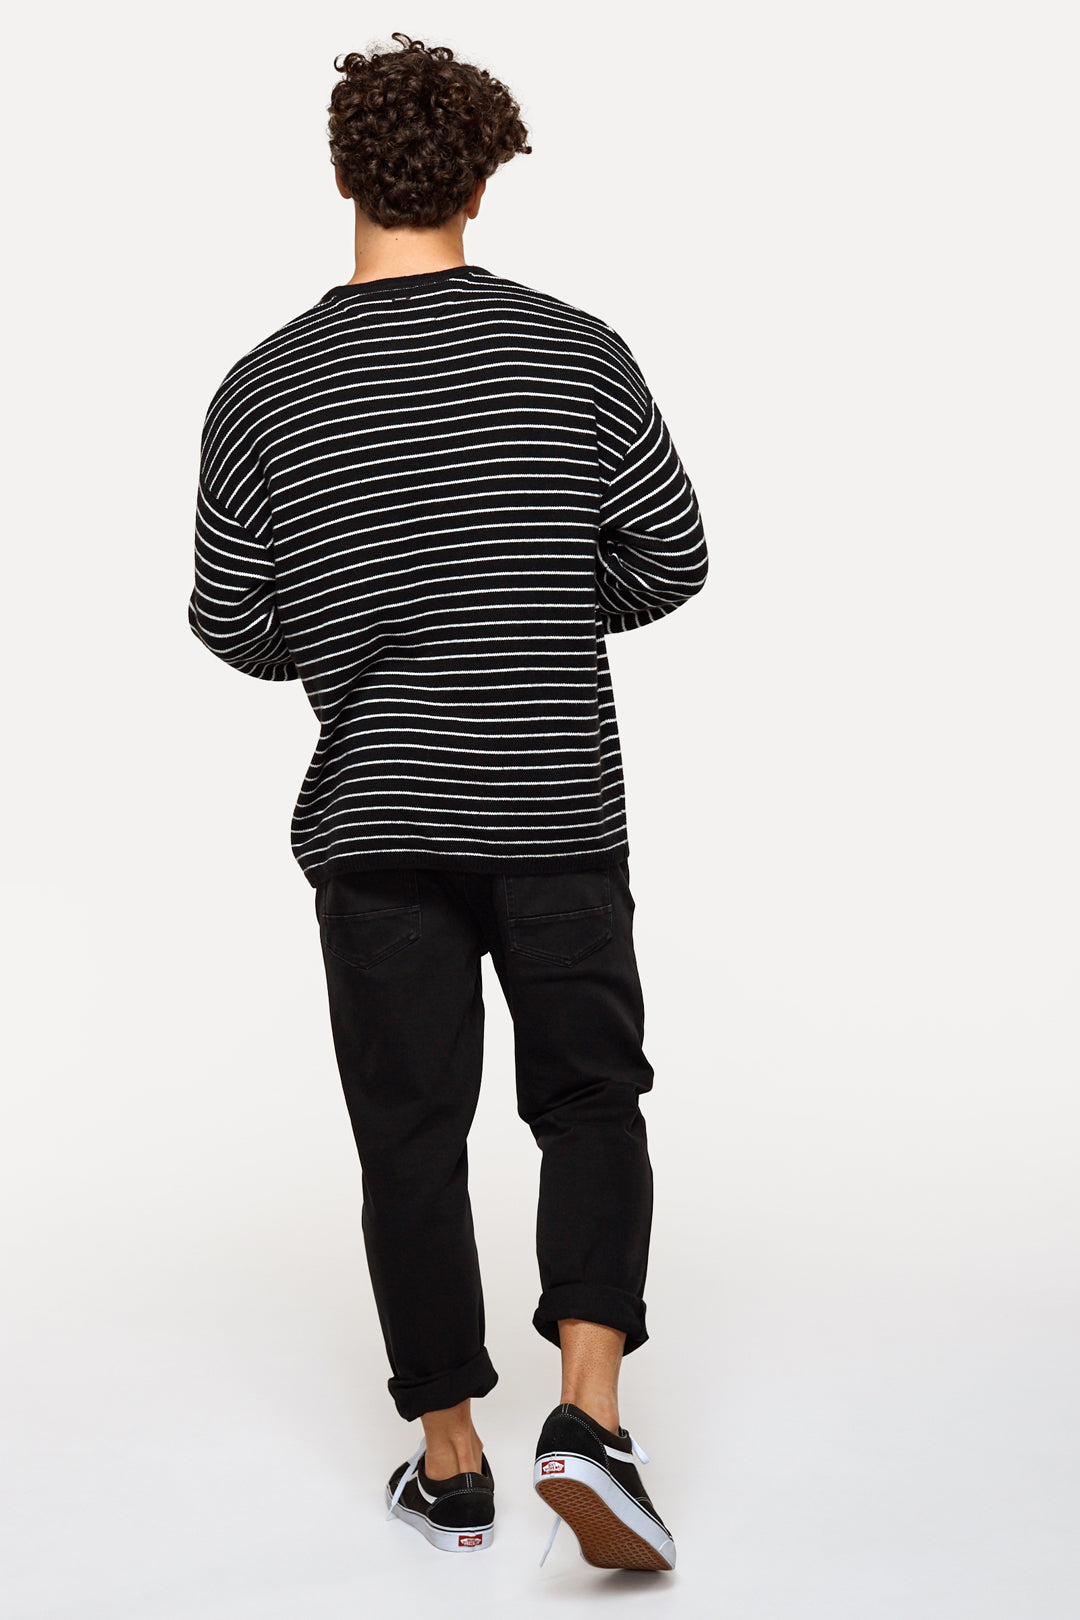 The Estates Stripe Knit - Blk/Of Wht